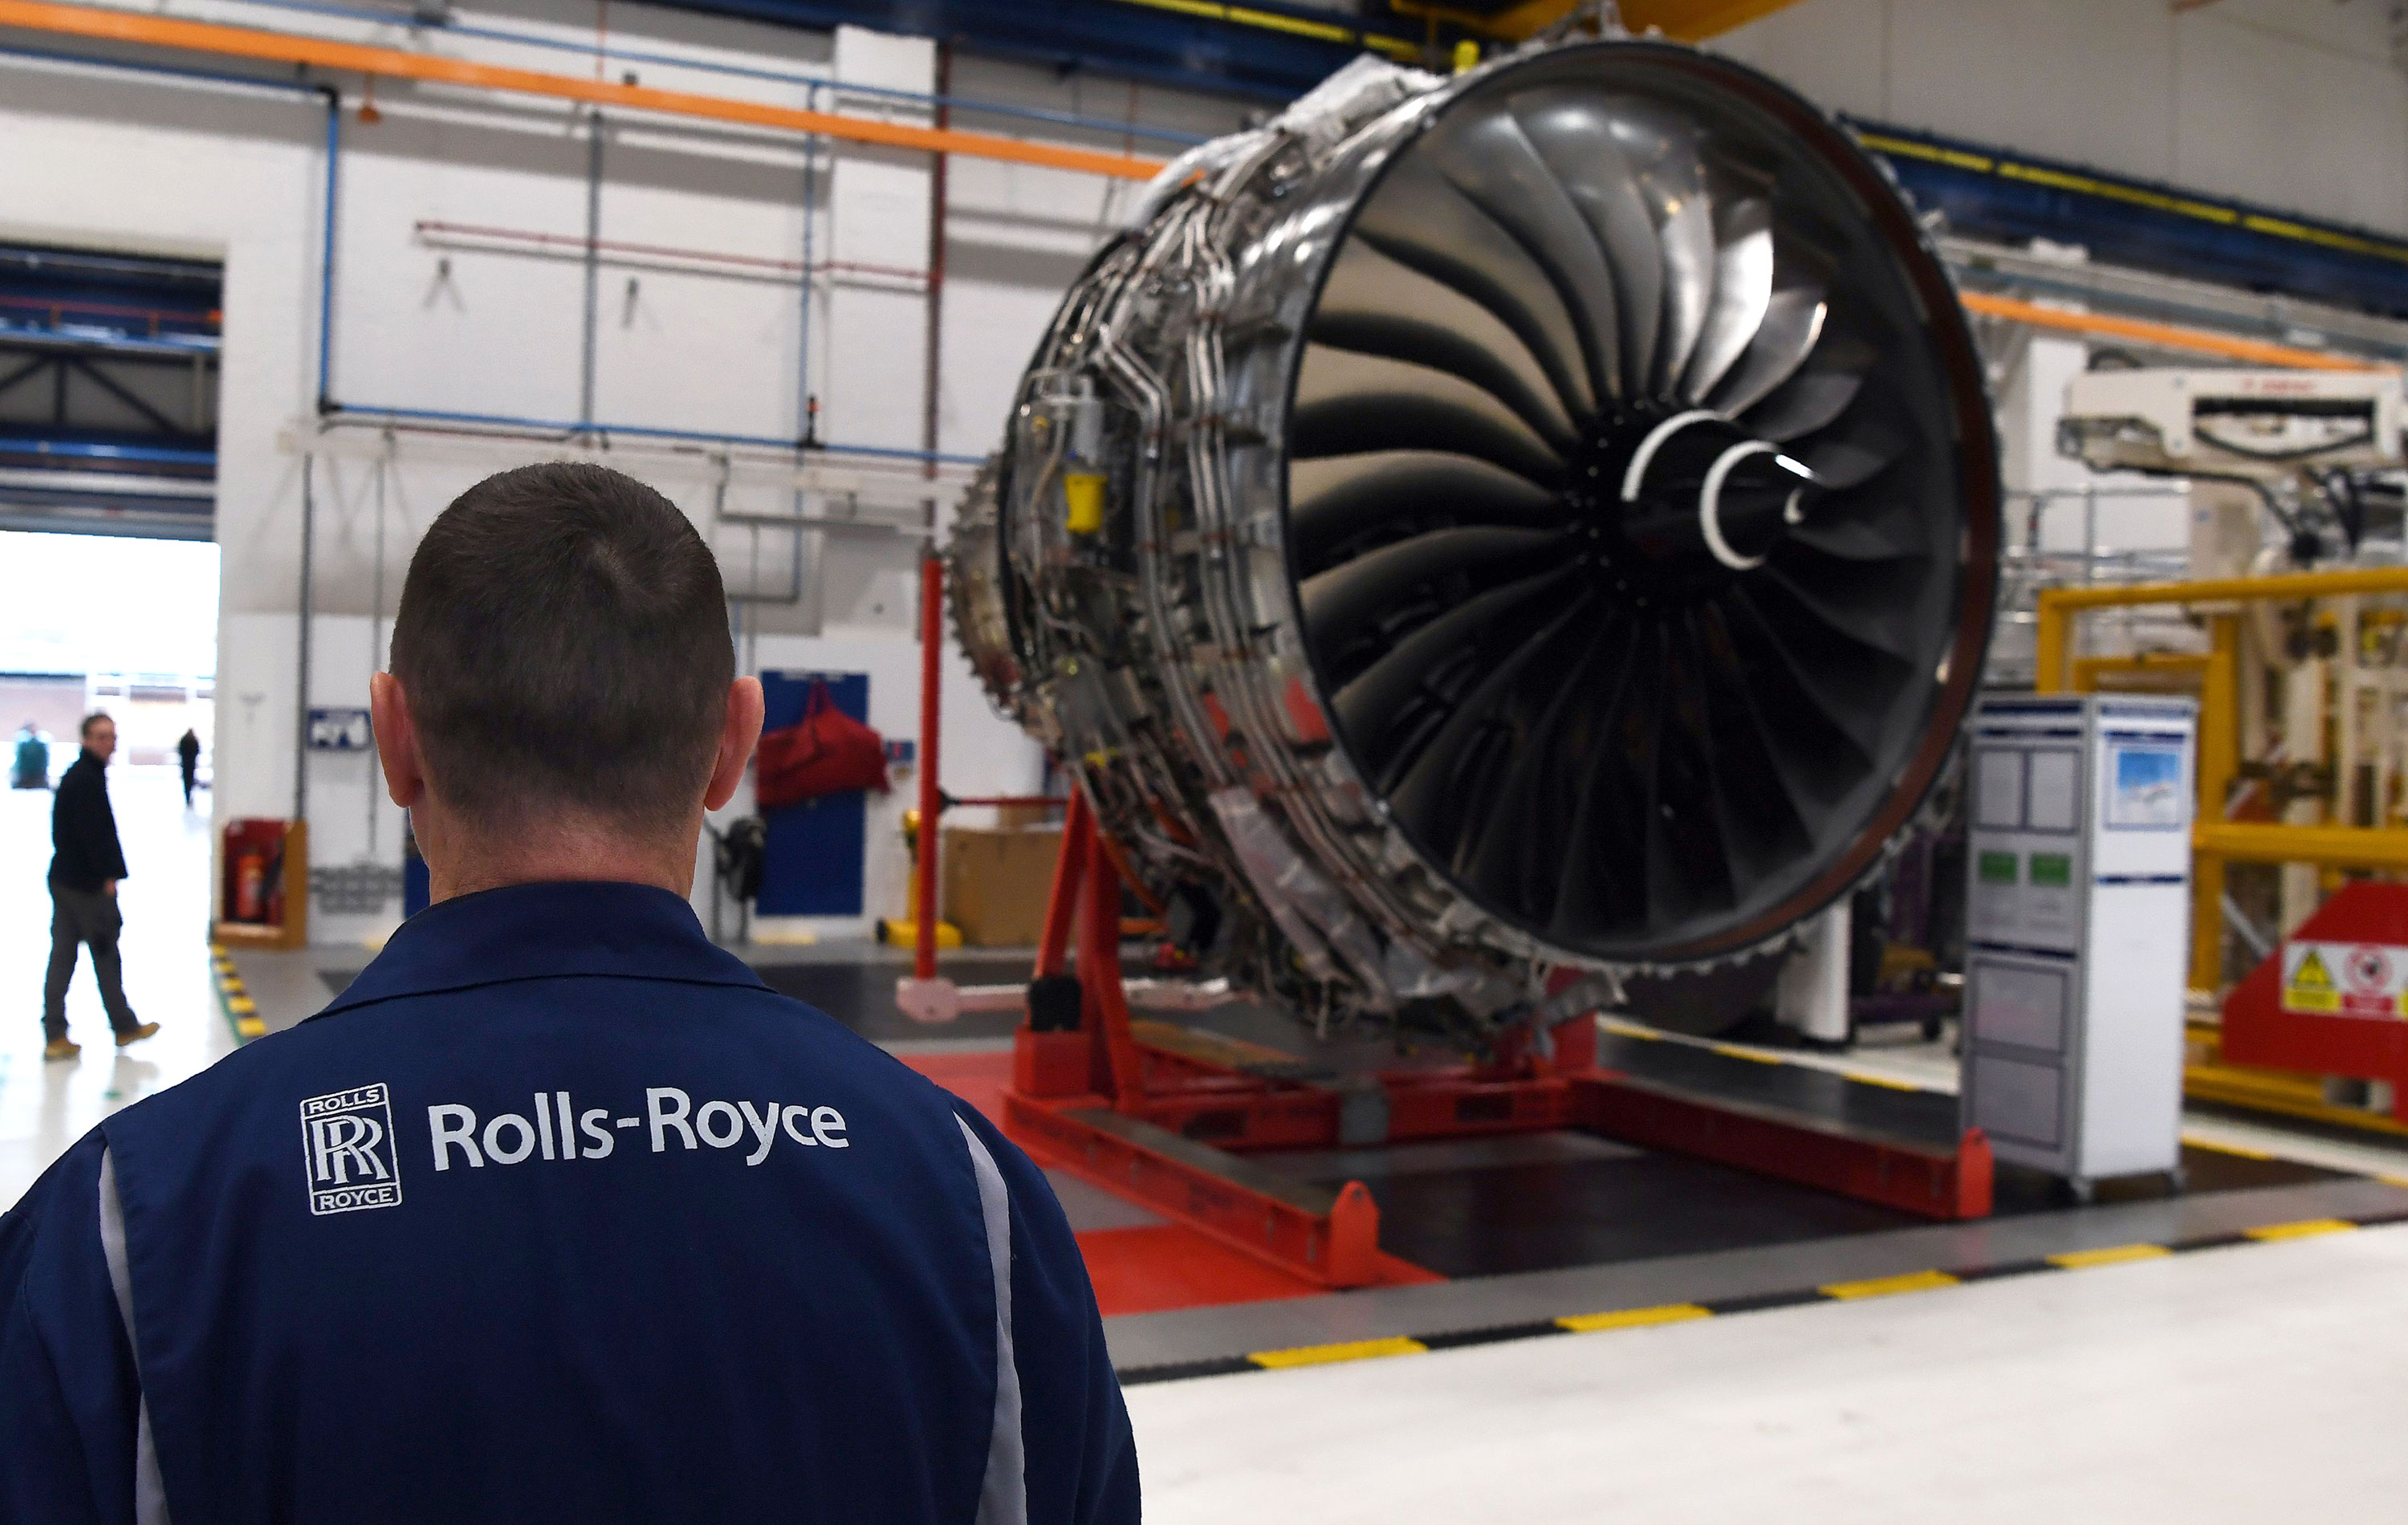 An engine is on view at the Rolls Royce factory in Derby, England, on November 30, 2016.